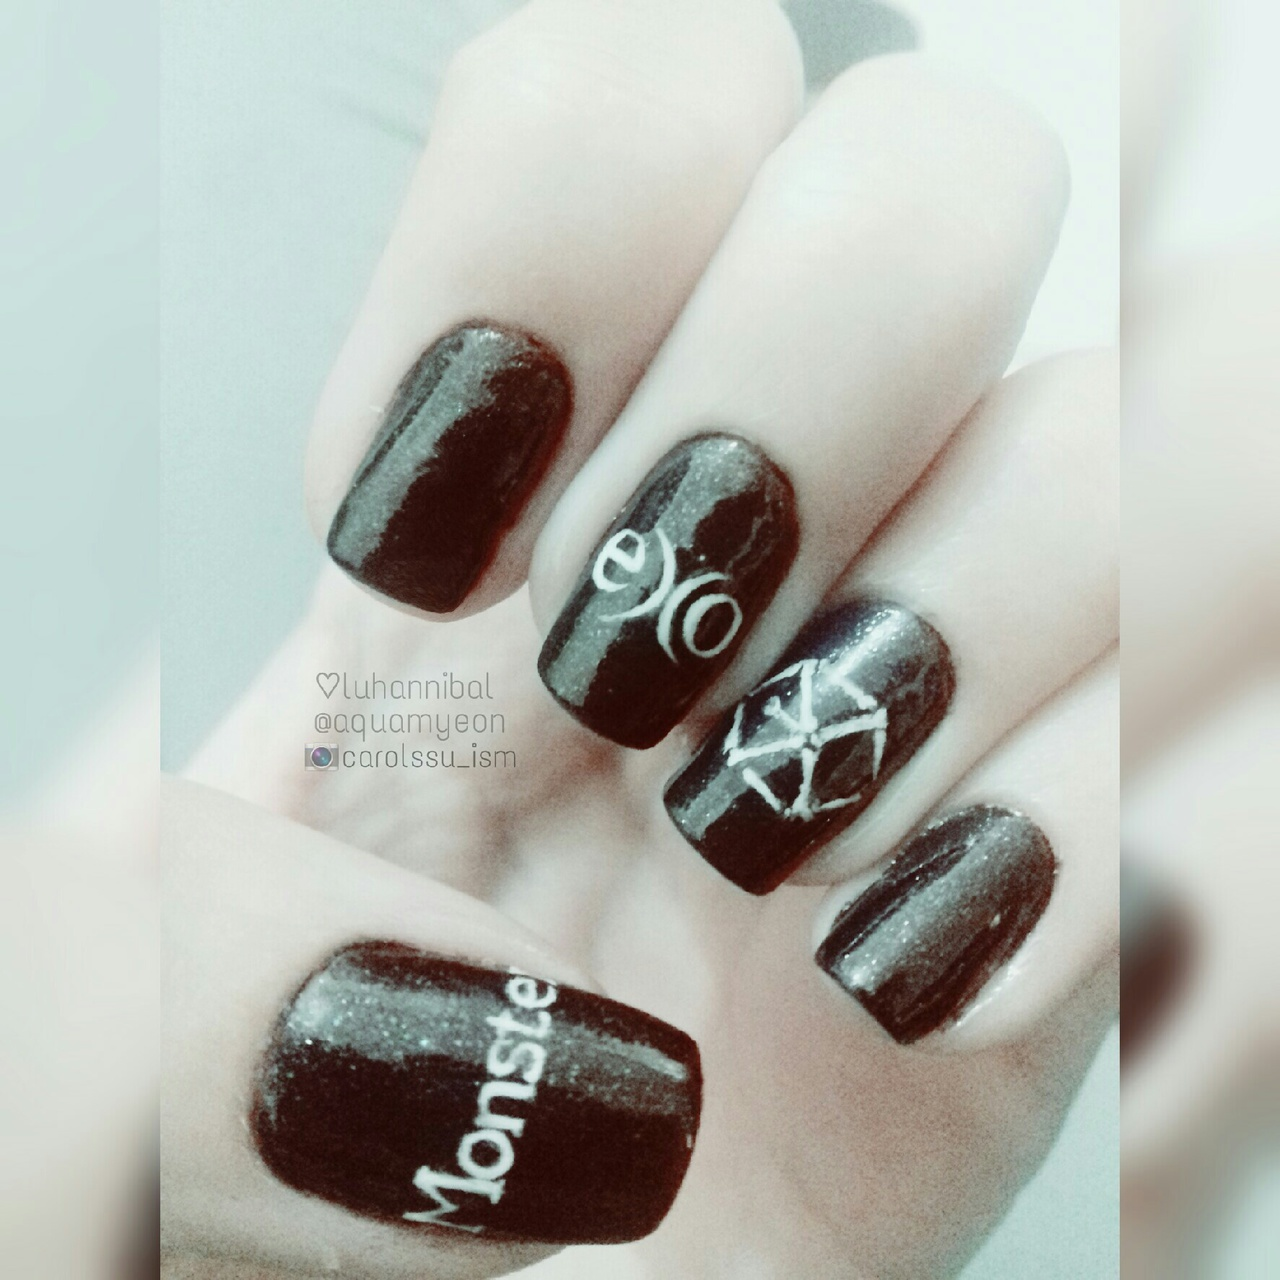 EXO Monster nails ♡♡♡ discovered by luhannibal